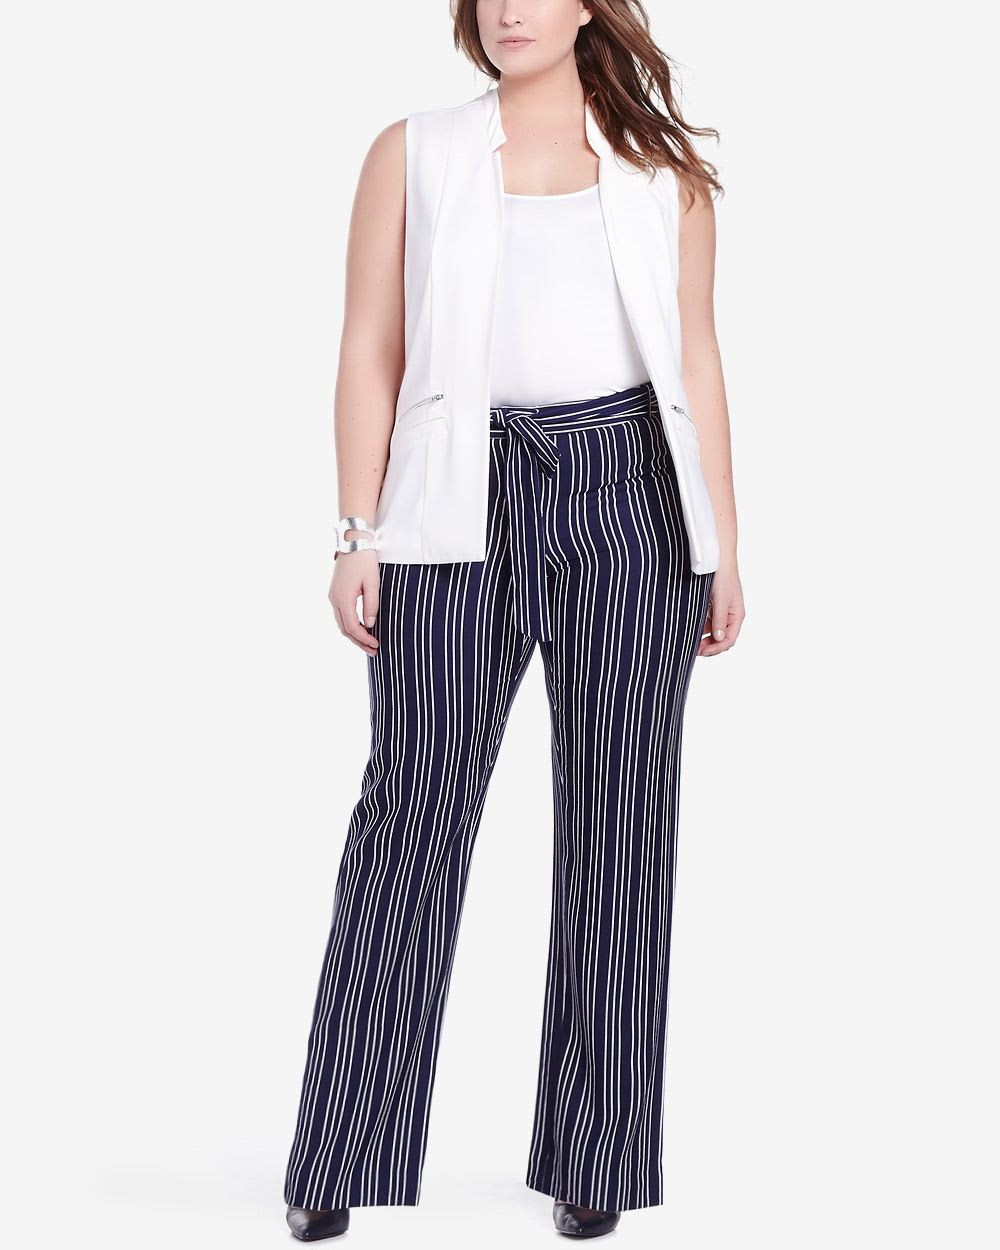 Offered in a classic bi-color stripe, they easily pair with a flounce tunic, elegant shell, or simple tee. These pants really do go with absolutely everything. For a curvier figure, try our Talbots Hampshire Ankle Pant - Curvy Fit/Stripe.